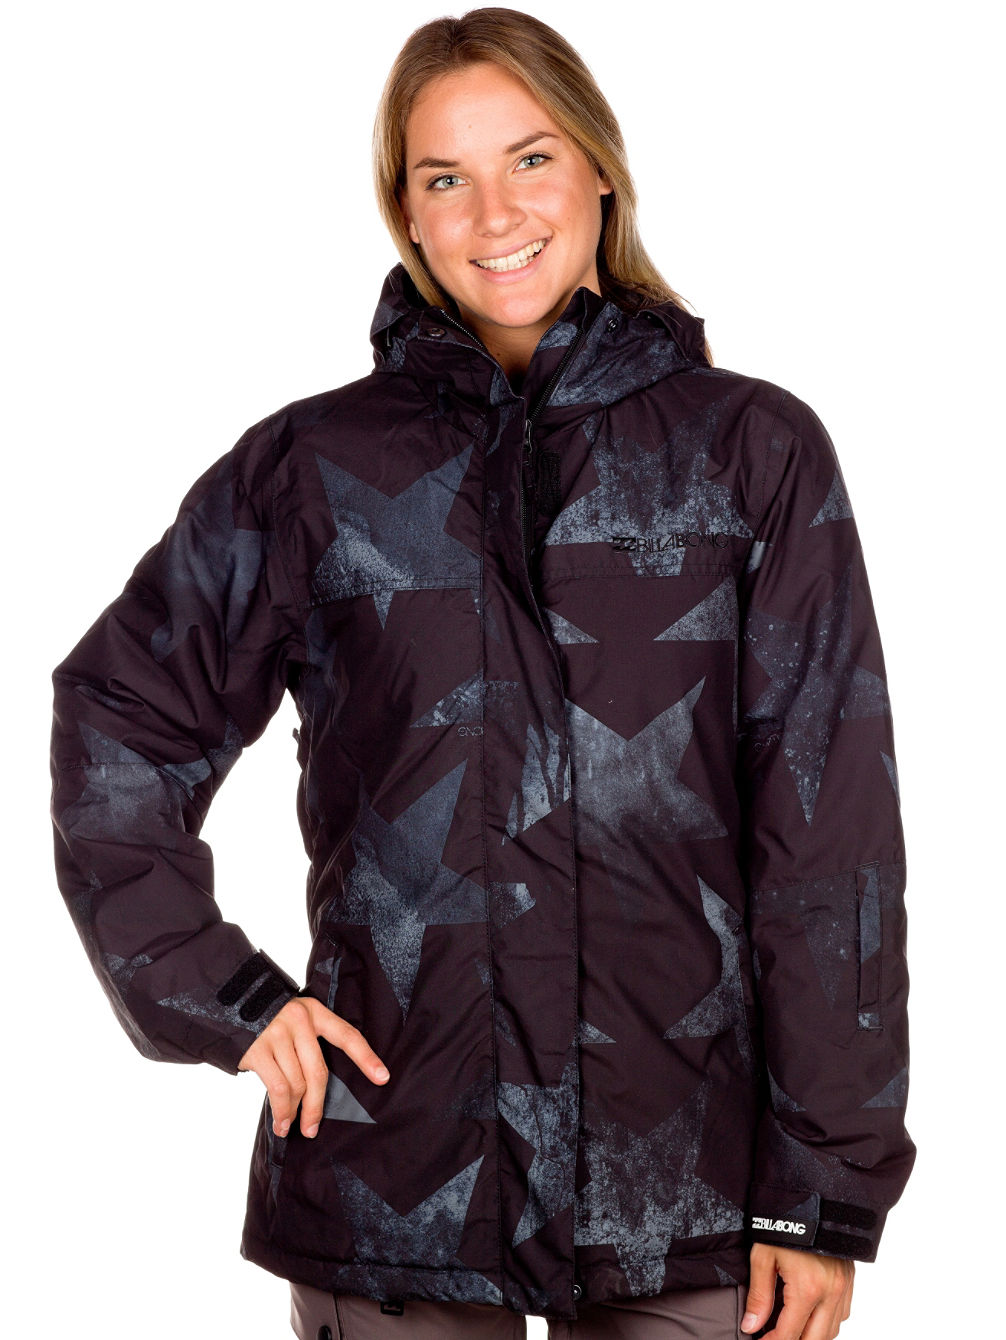 Jelly Jacket Women